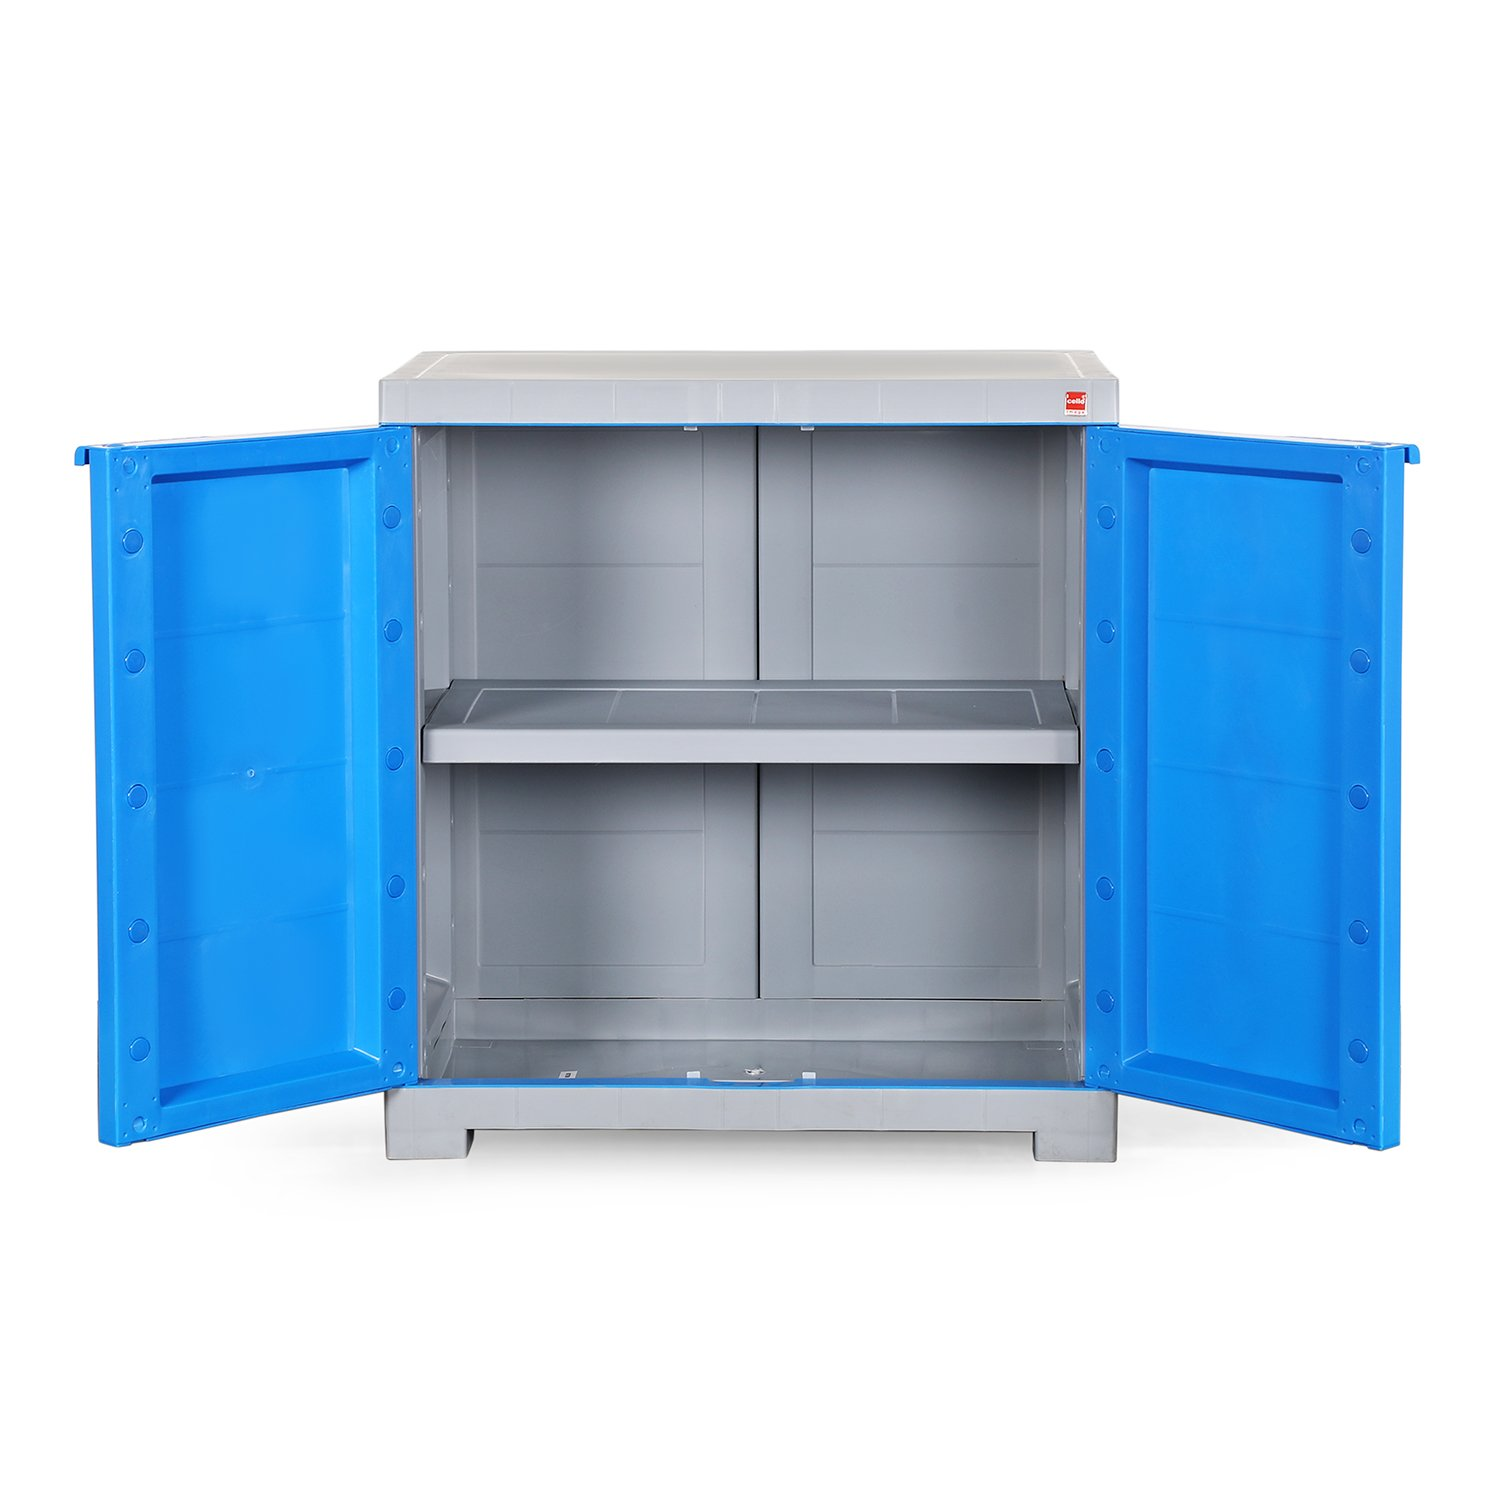 Cello Novelty Compact Cupboard - Blue and Grey: Amazon.in: Home ...